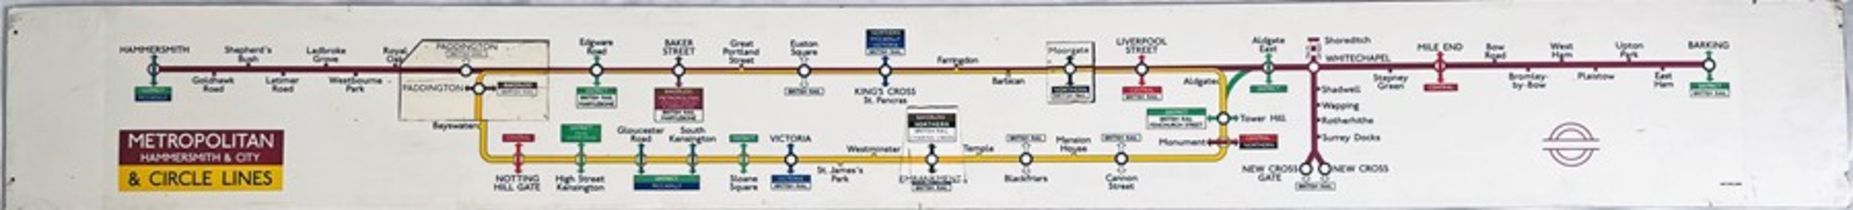 1969 London Underground CAR LINE DIAGRAM for the Metropolitan (Hammersmith & City) and Circle Lines.